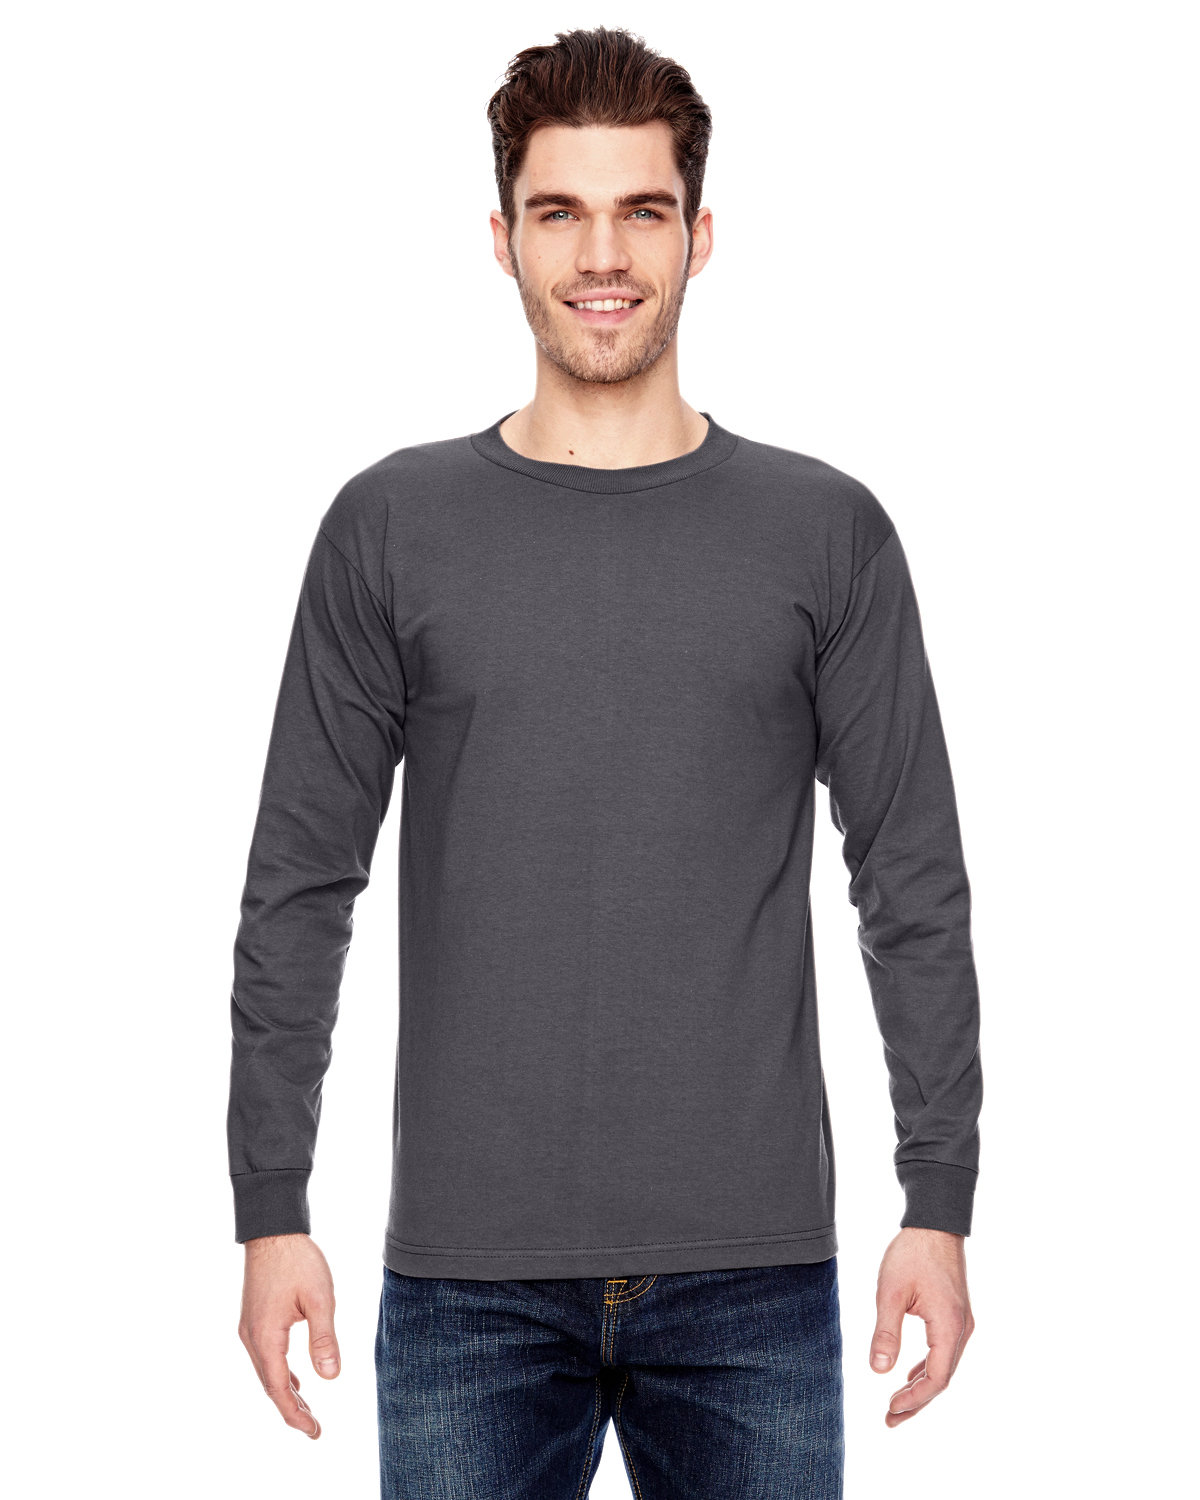 Bayside Adult 6.1 oz., 100% Cotton Long Sleeve T-Shirt CHARCOAL